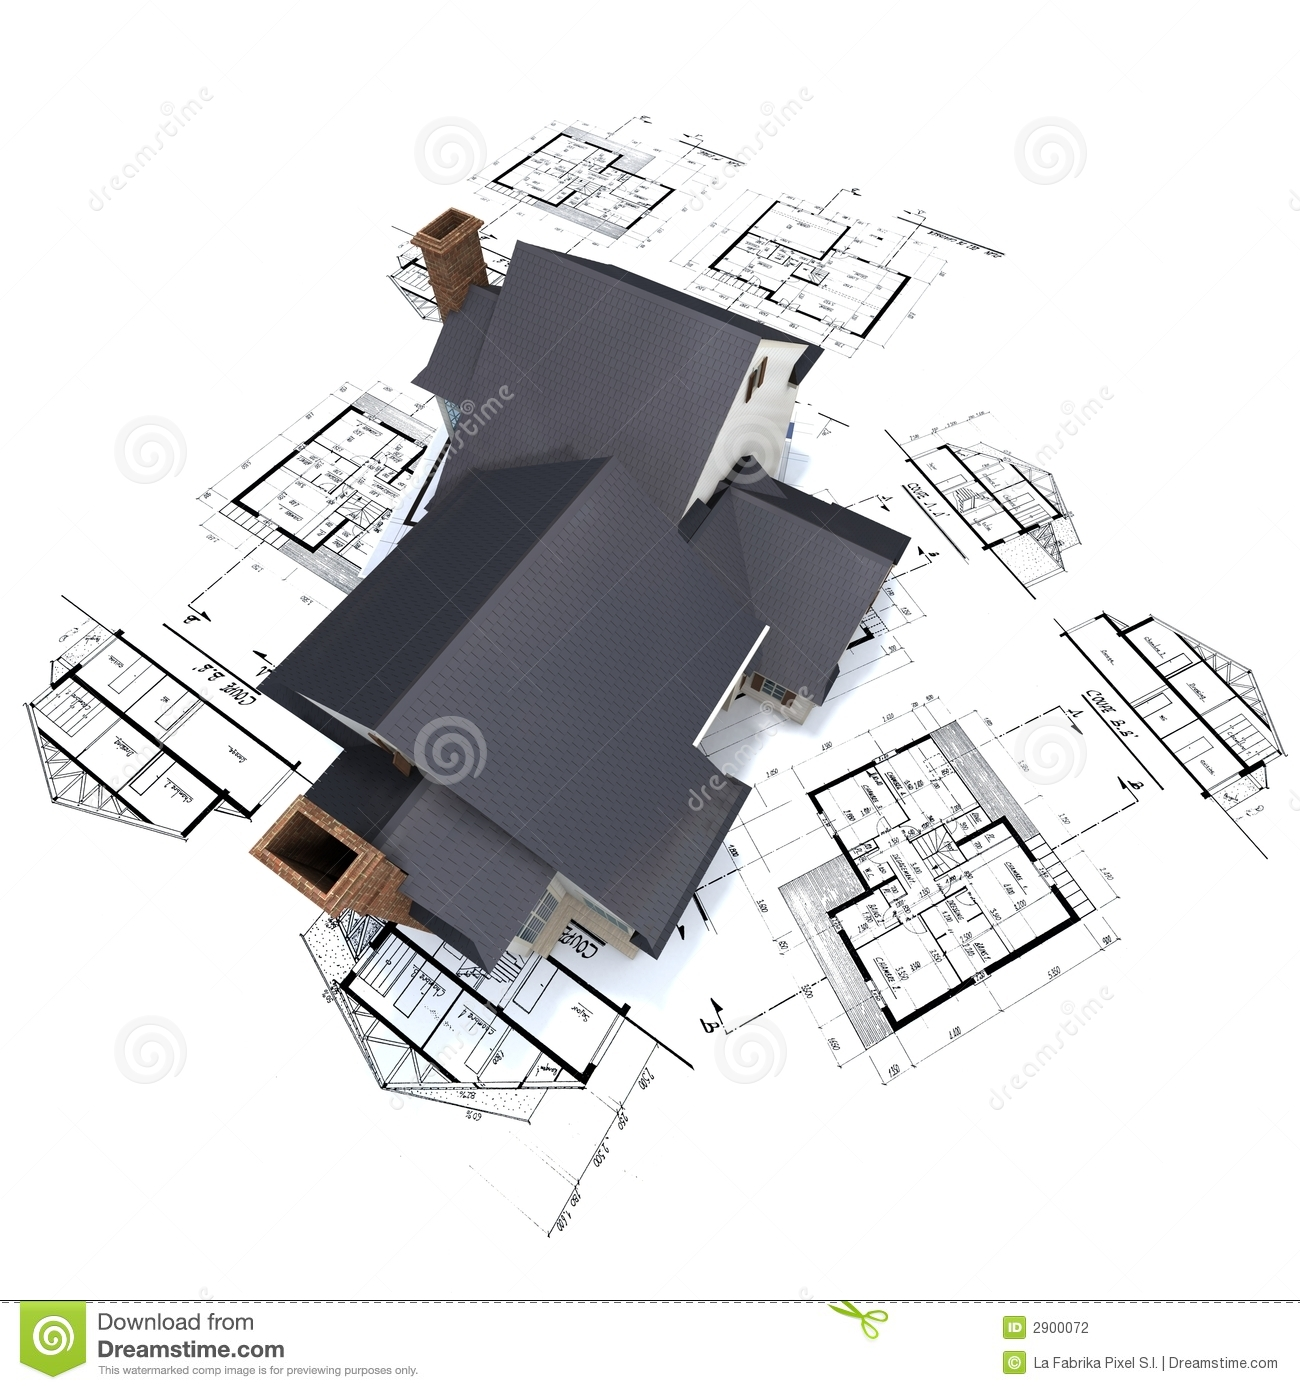 Residential house on plans 3 stock illustration image for Residential building plans